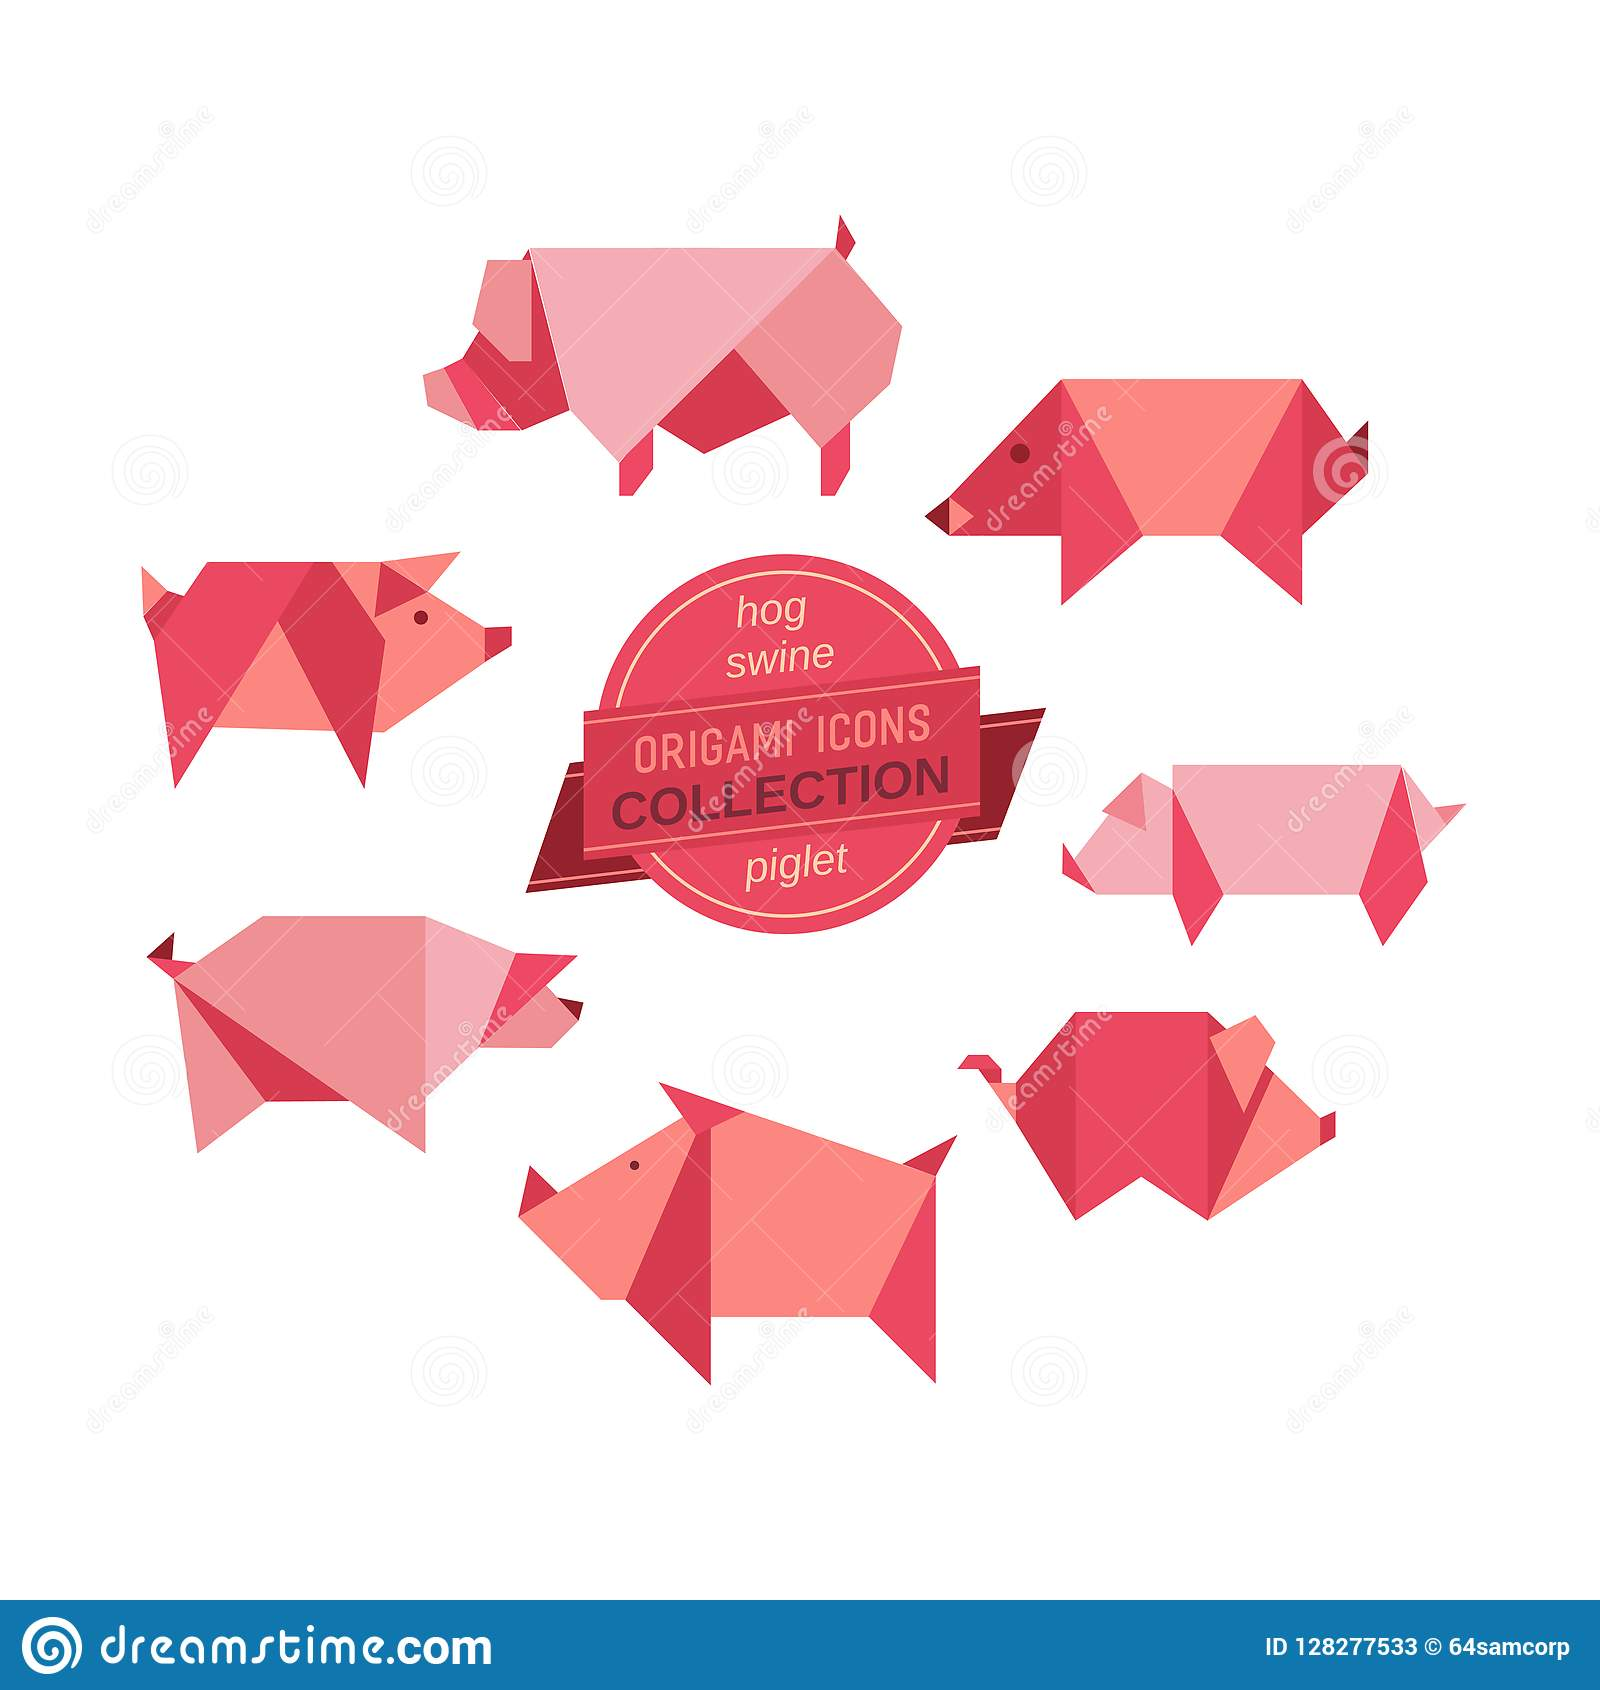 Origami Pigs Collection Stock Vector Illustration Of Minimal